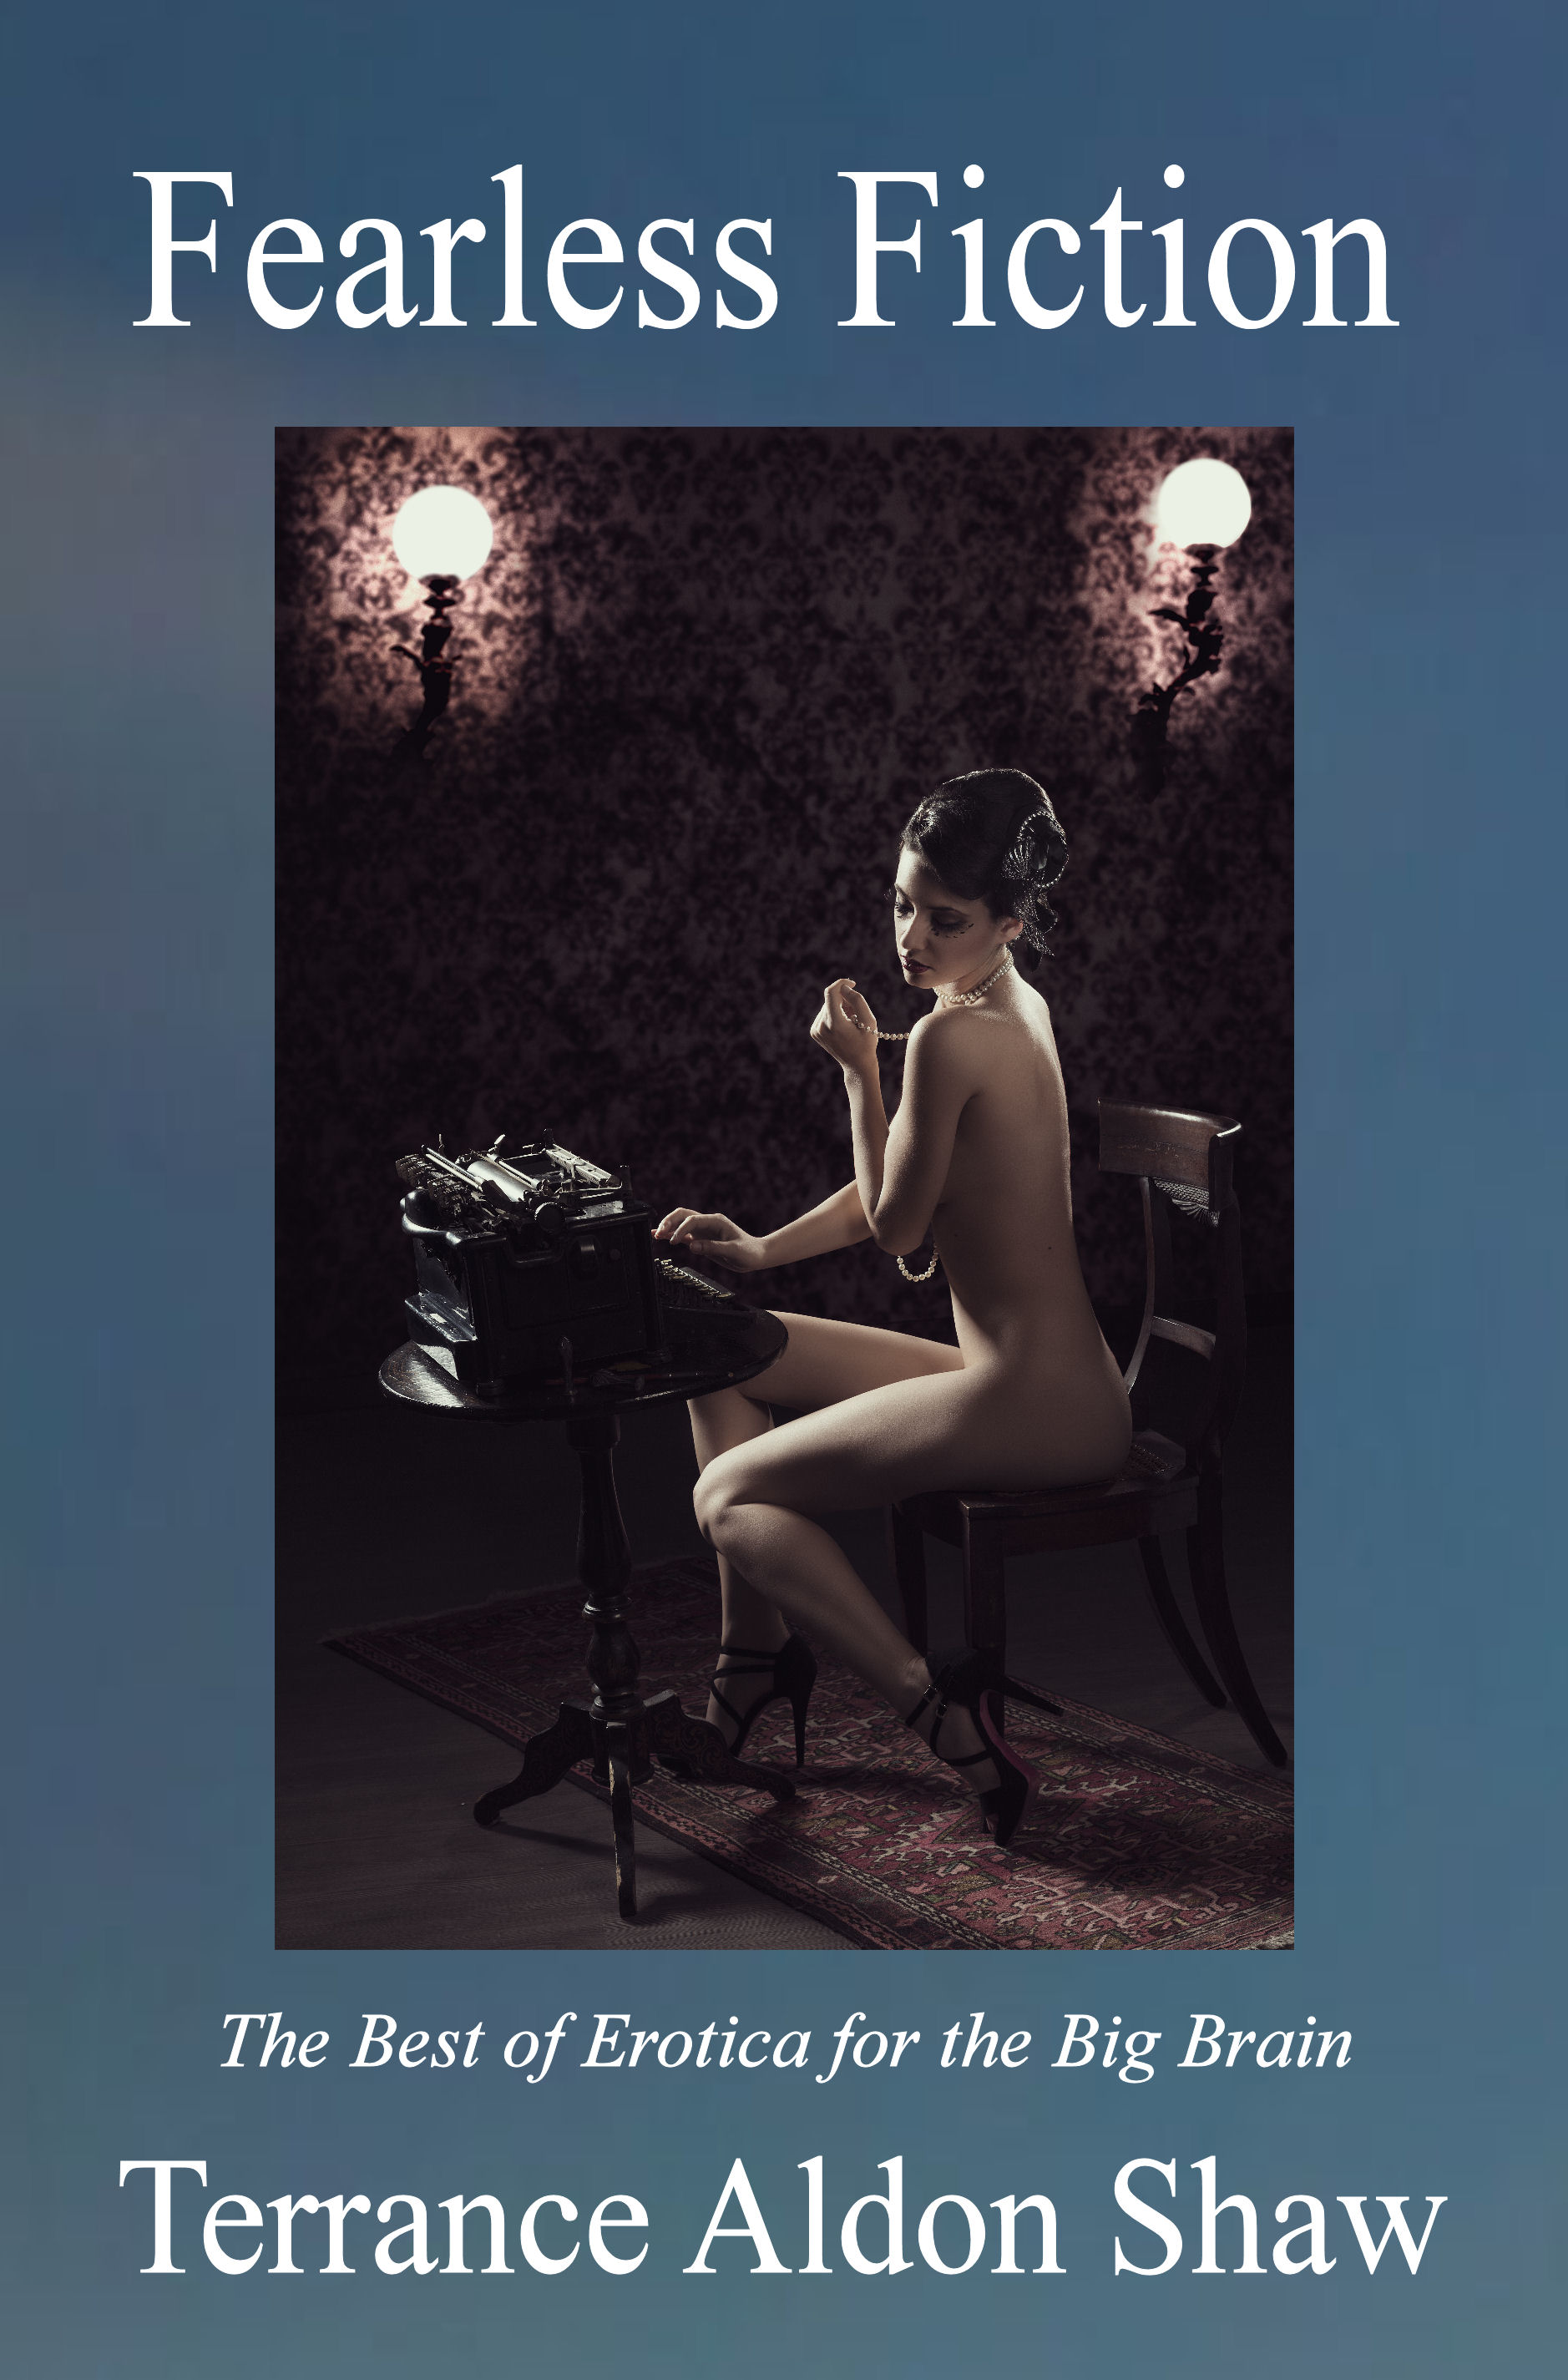 Fearless Fiction: The Best of Erotica for the Big Brain